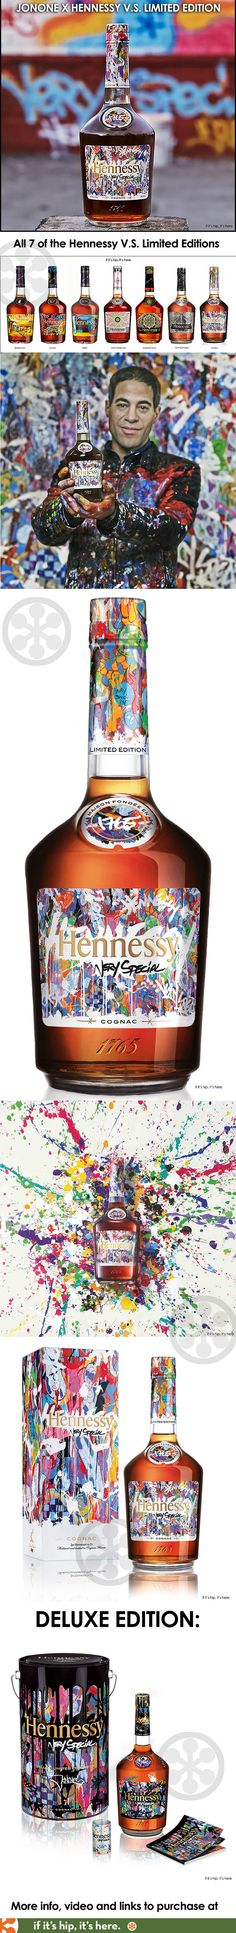 JonOne is the latest (and seventh) artist to create a limited edition label and gift box for the Hennessy V.S. Limited Edition Series.